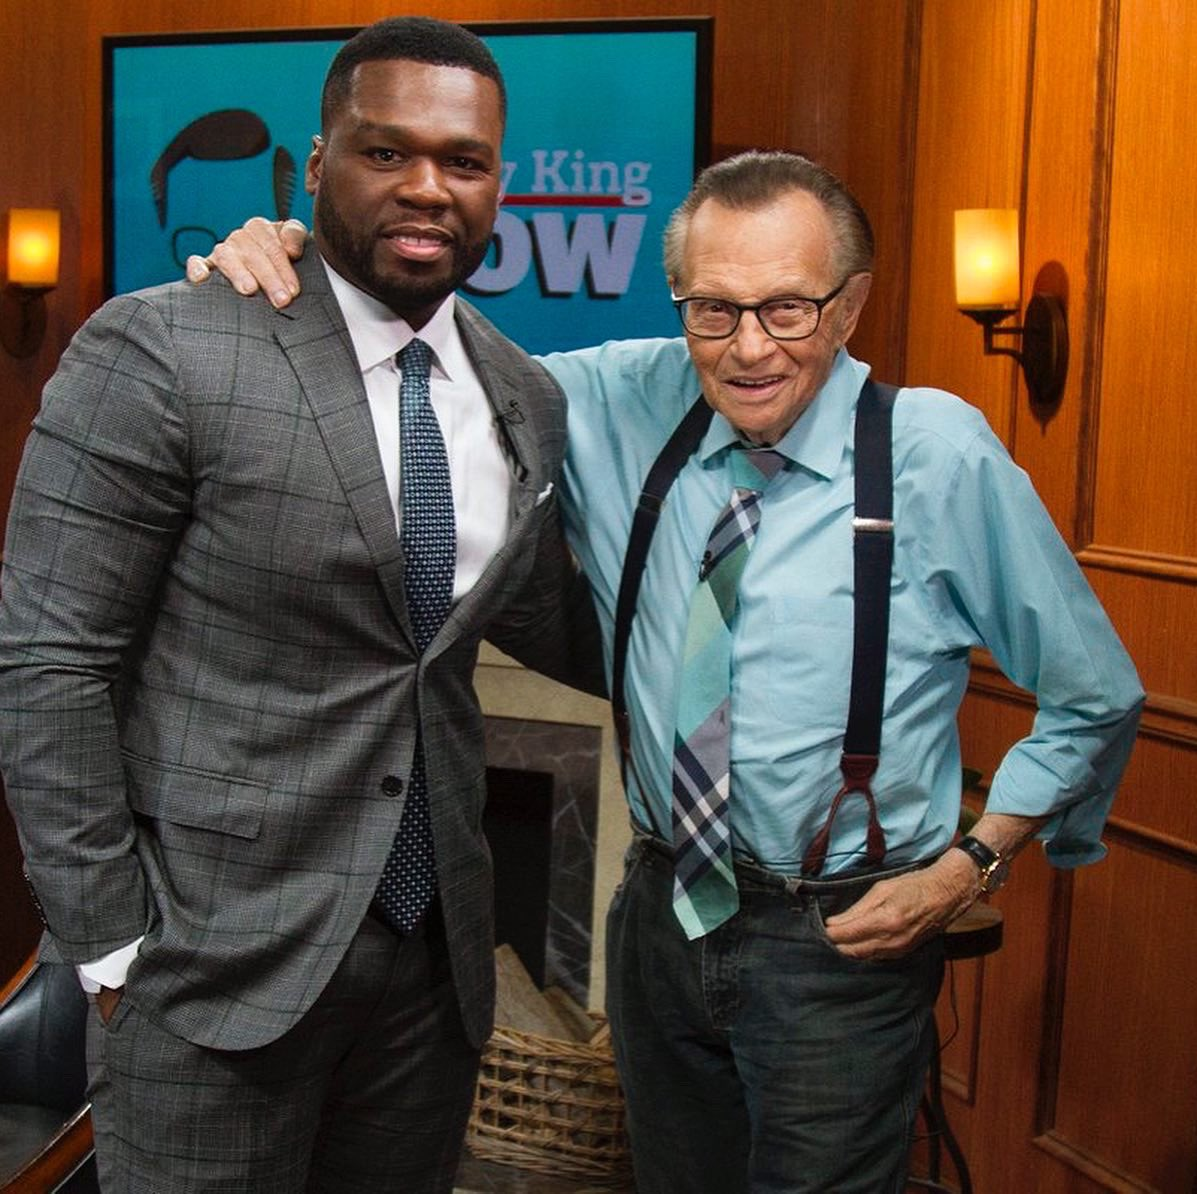 Replying to @50cent: R.i.P To the legend Larry King God bless him. 🙏🏿🕊